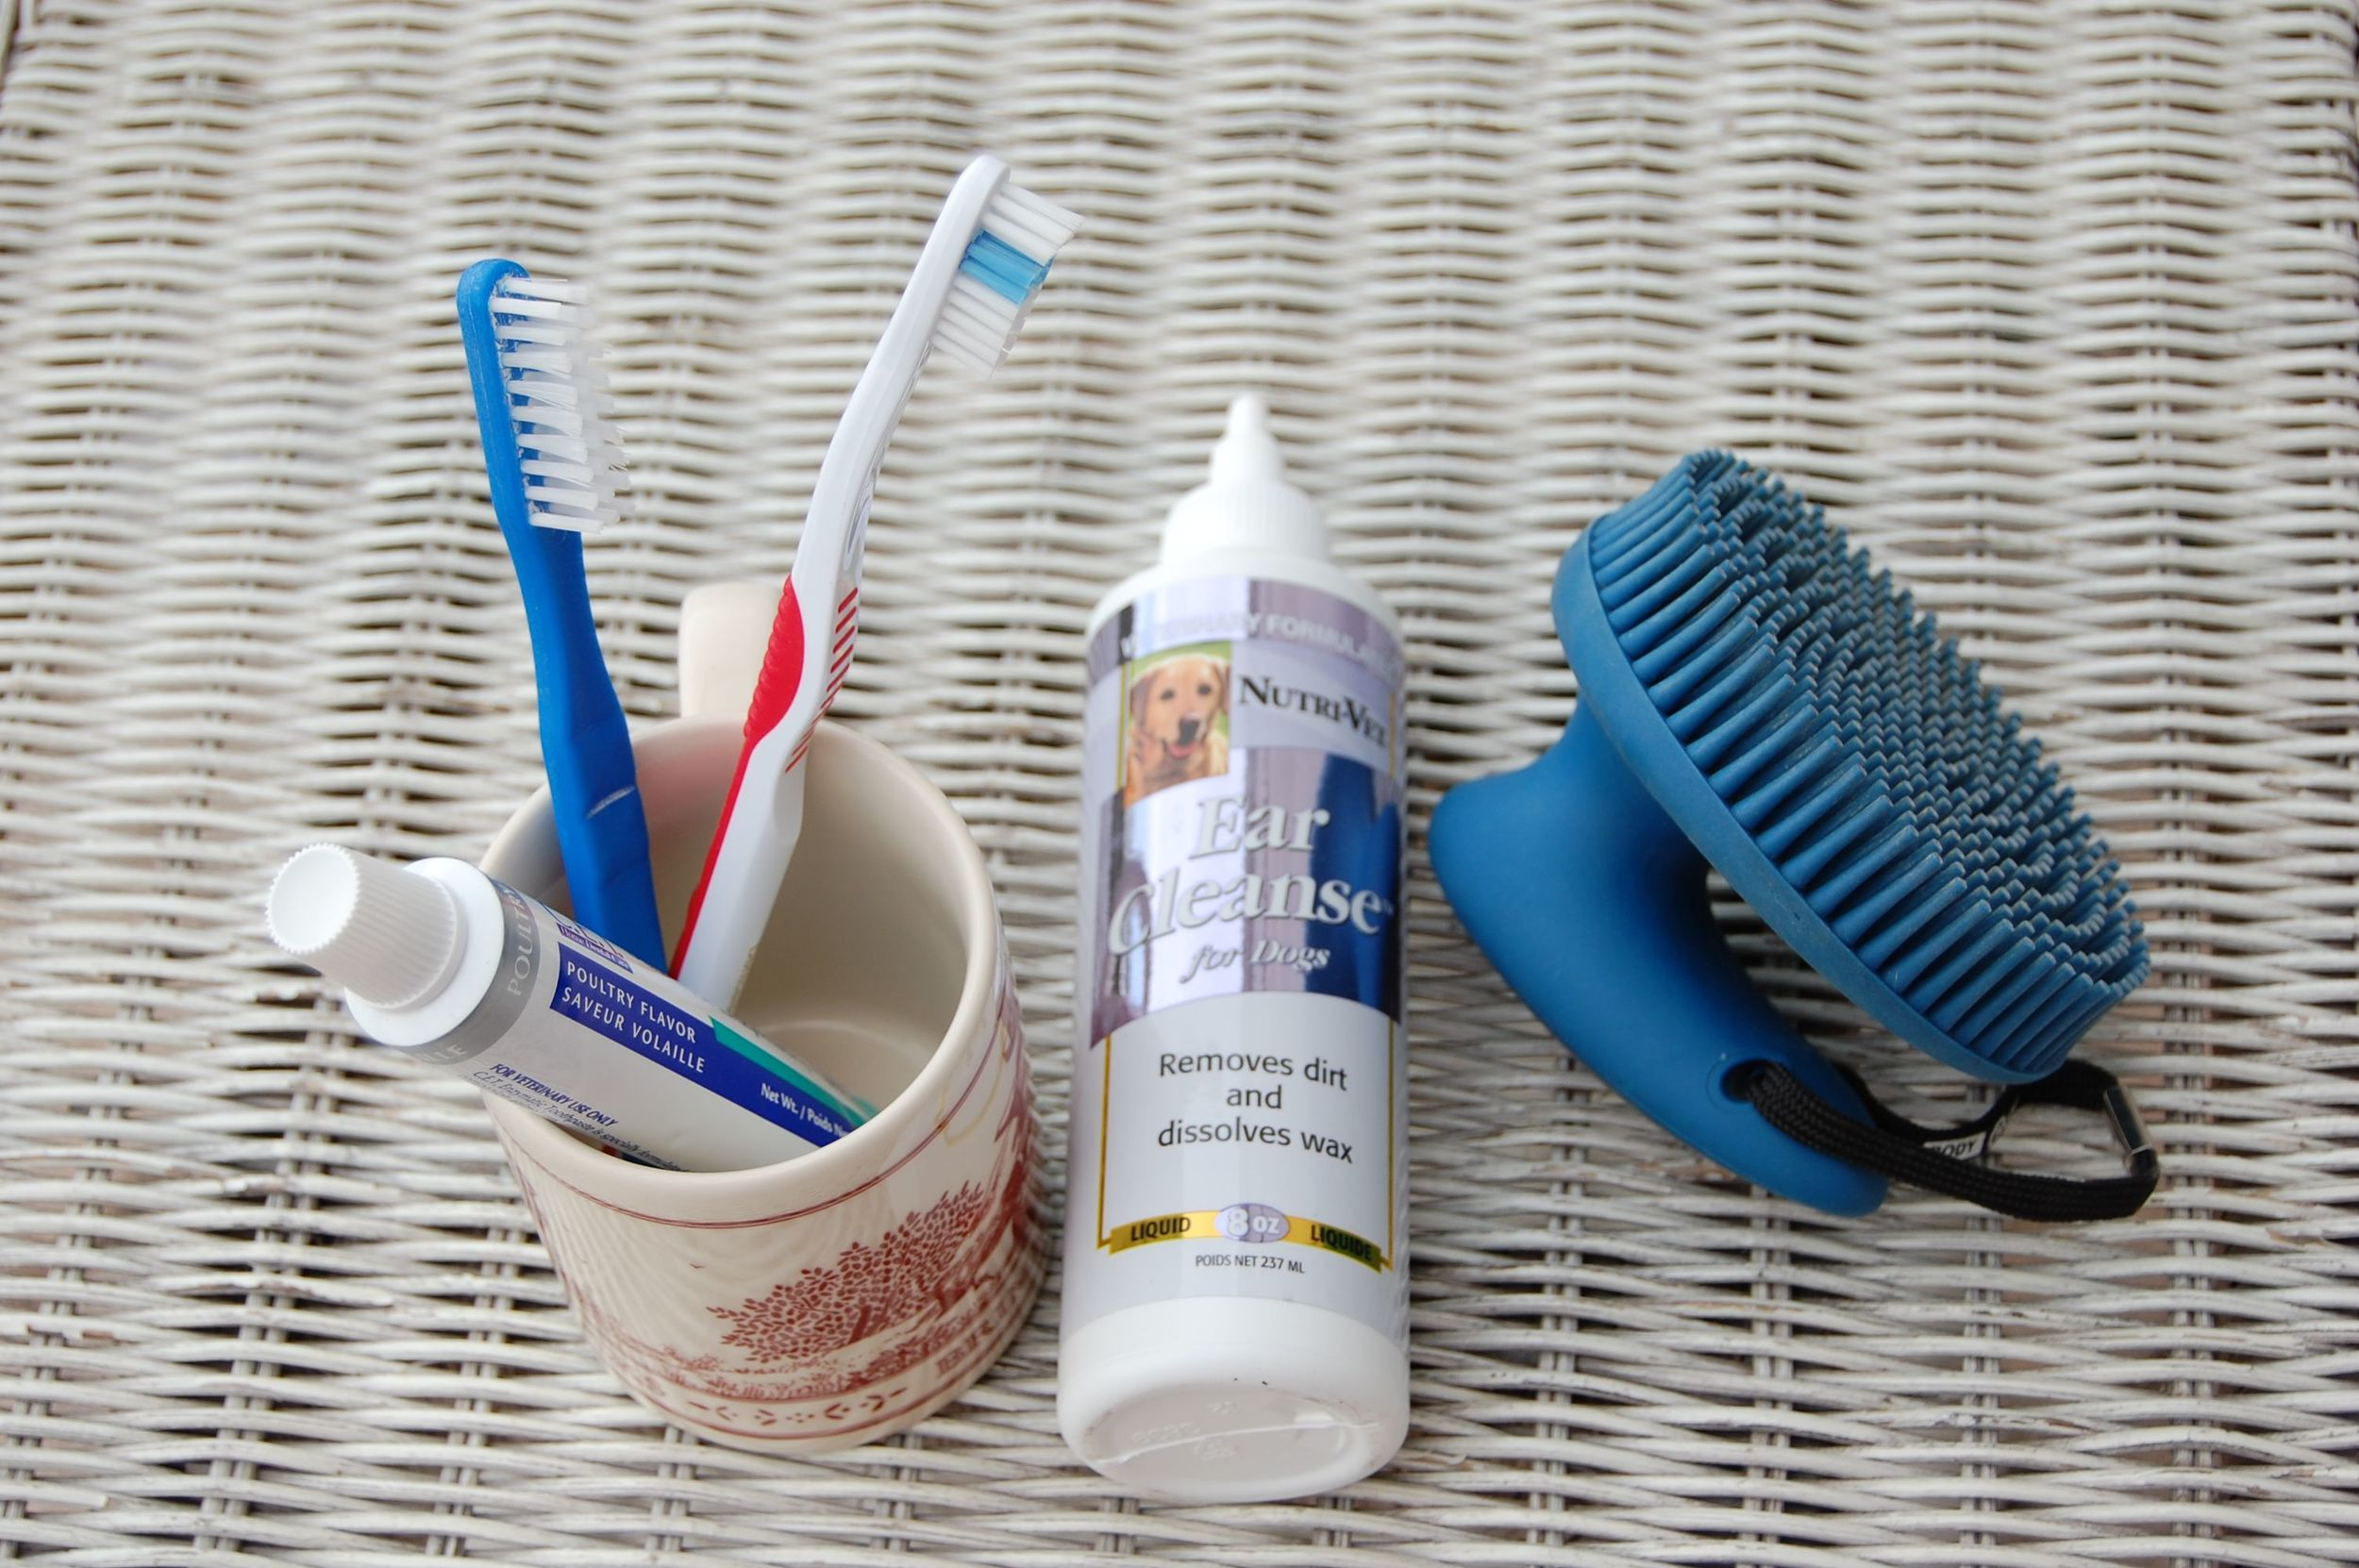 Dental equipment, ear cleanser, and a curry comb for hair. The last for my shorthaired breed is optional; the second is important at times; the first is essential  ALL the time .